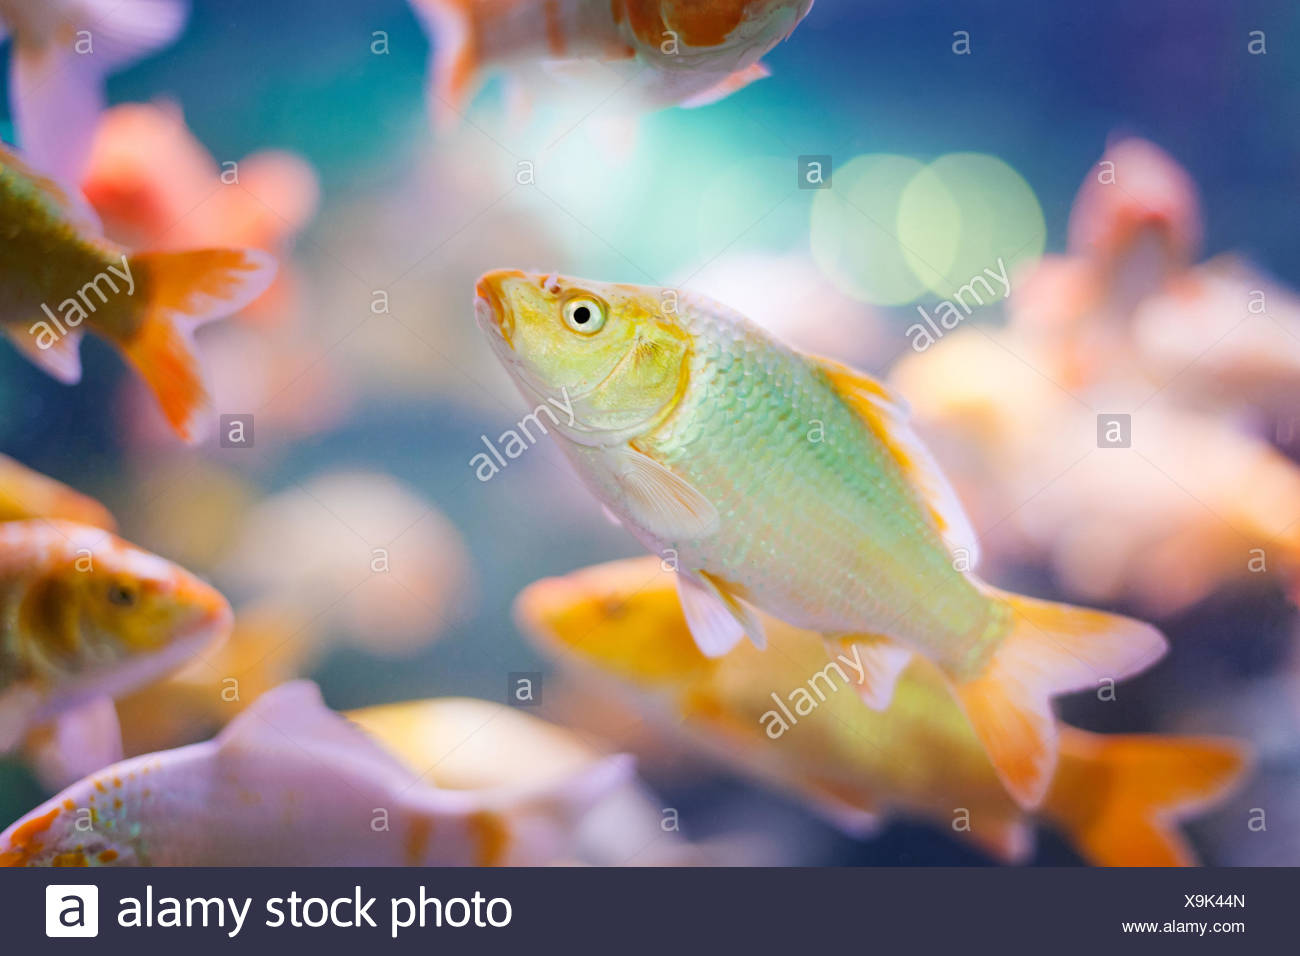 Beautiful fish in colorfully lit tank - Stock Image